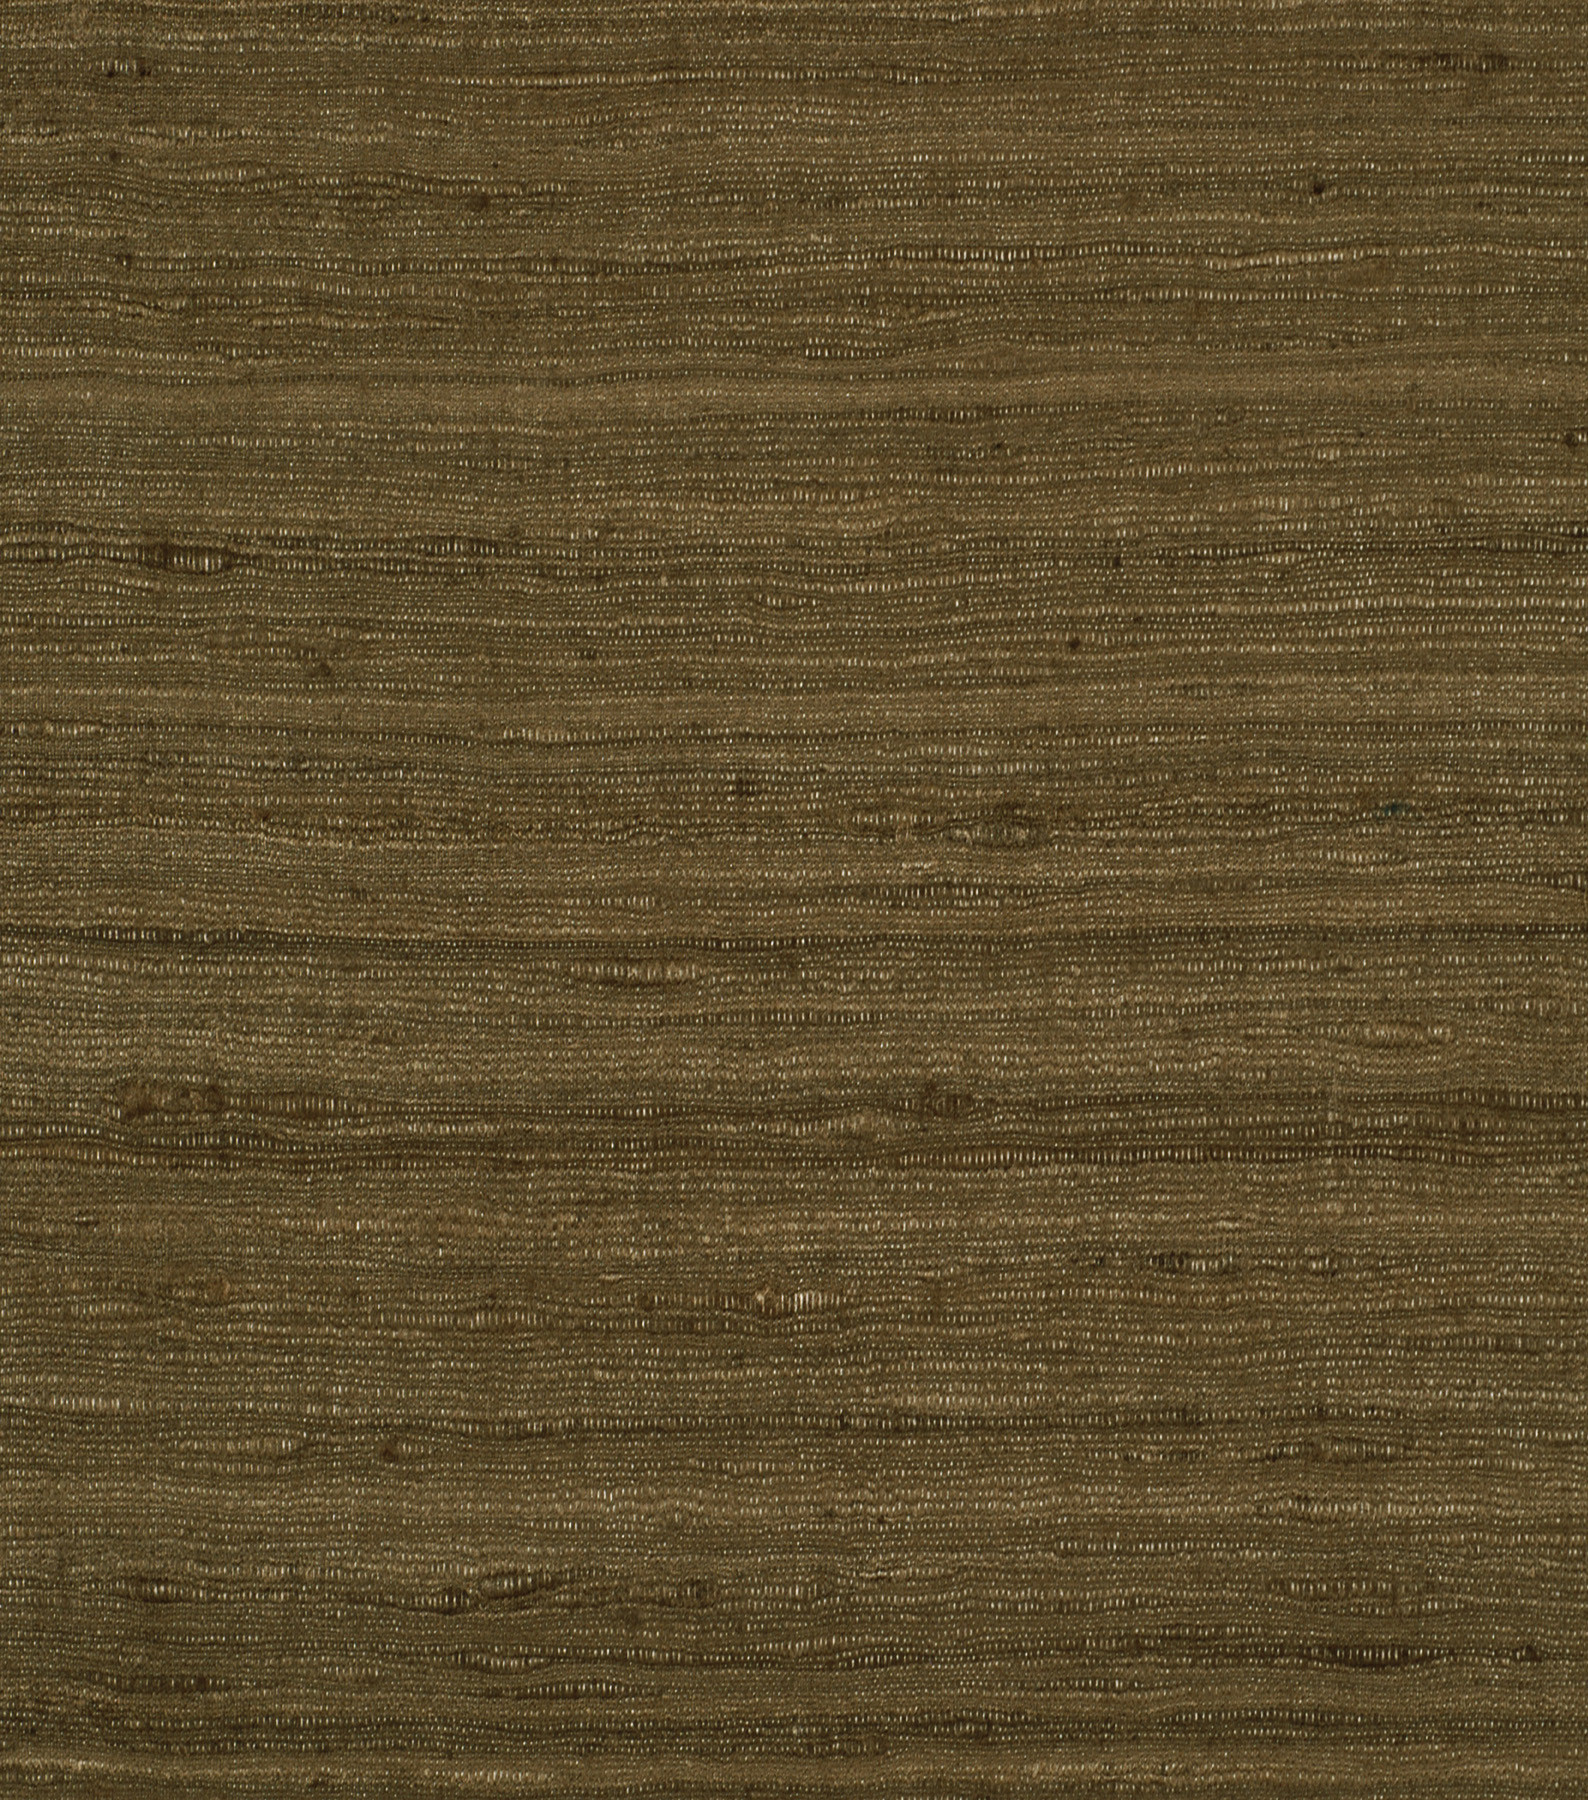 Home Decor 8\u0022x8\u0022 Fabric Swatch-Solid Fabric Signature Series Aussie Cocoa